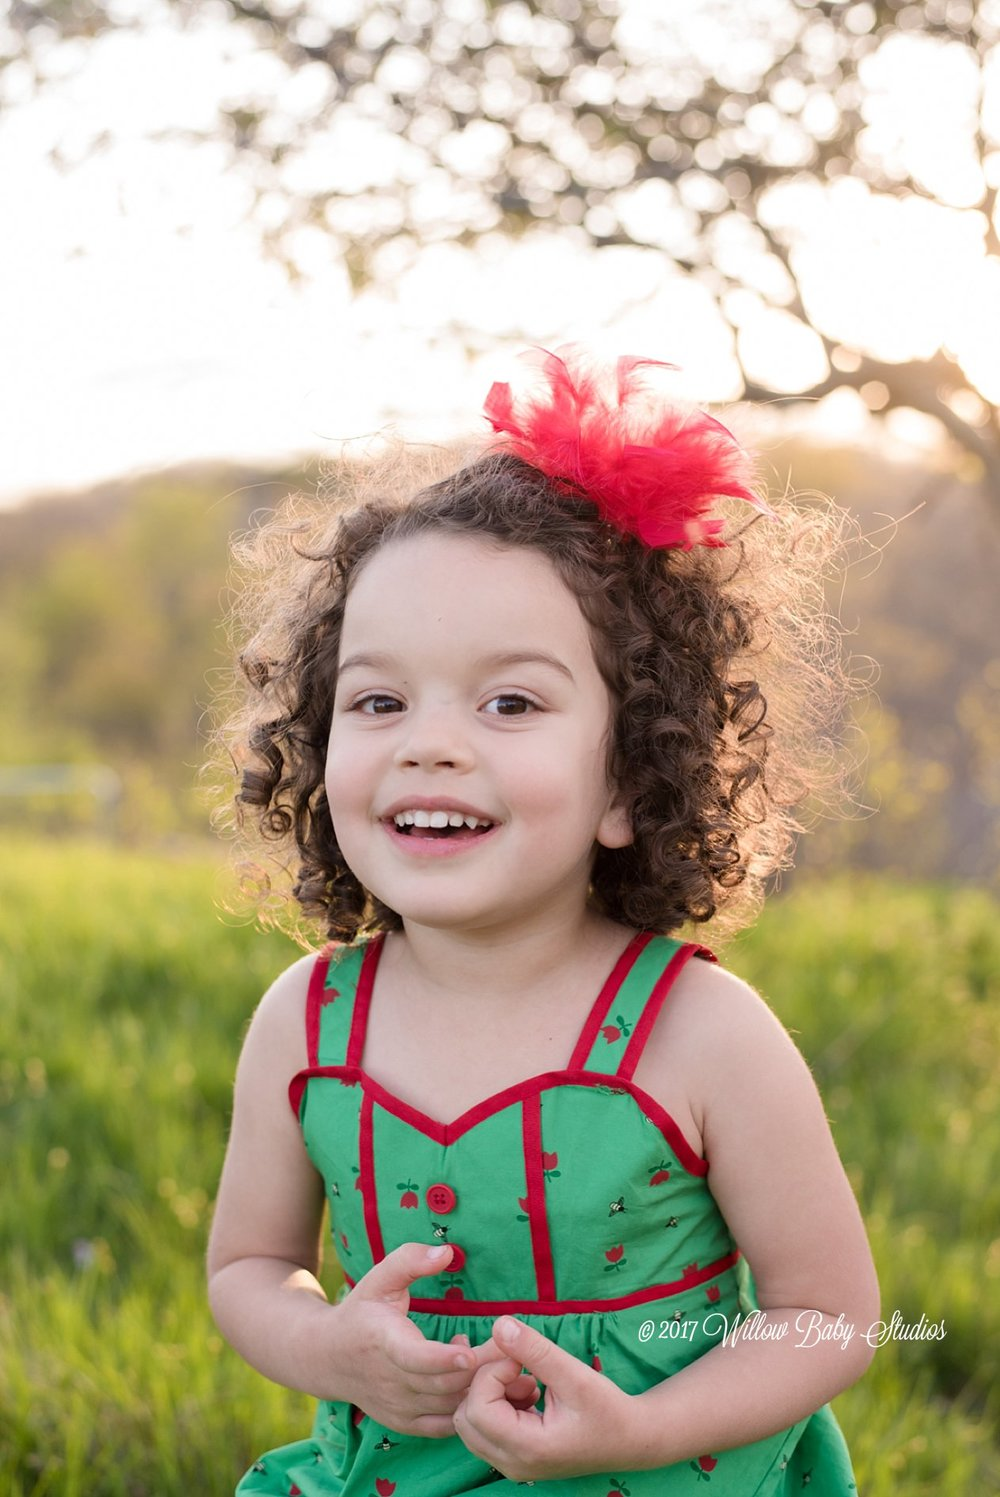 curly-haired-smiling-girl-spring-evening